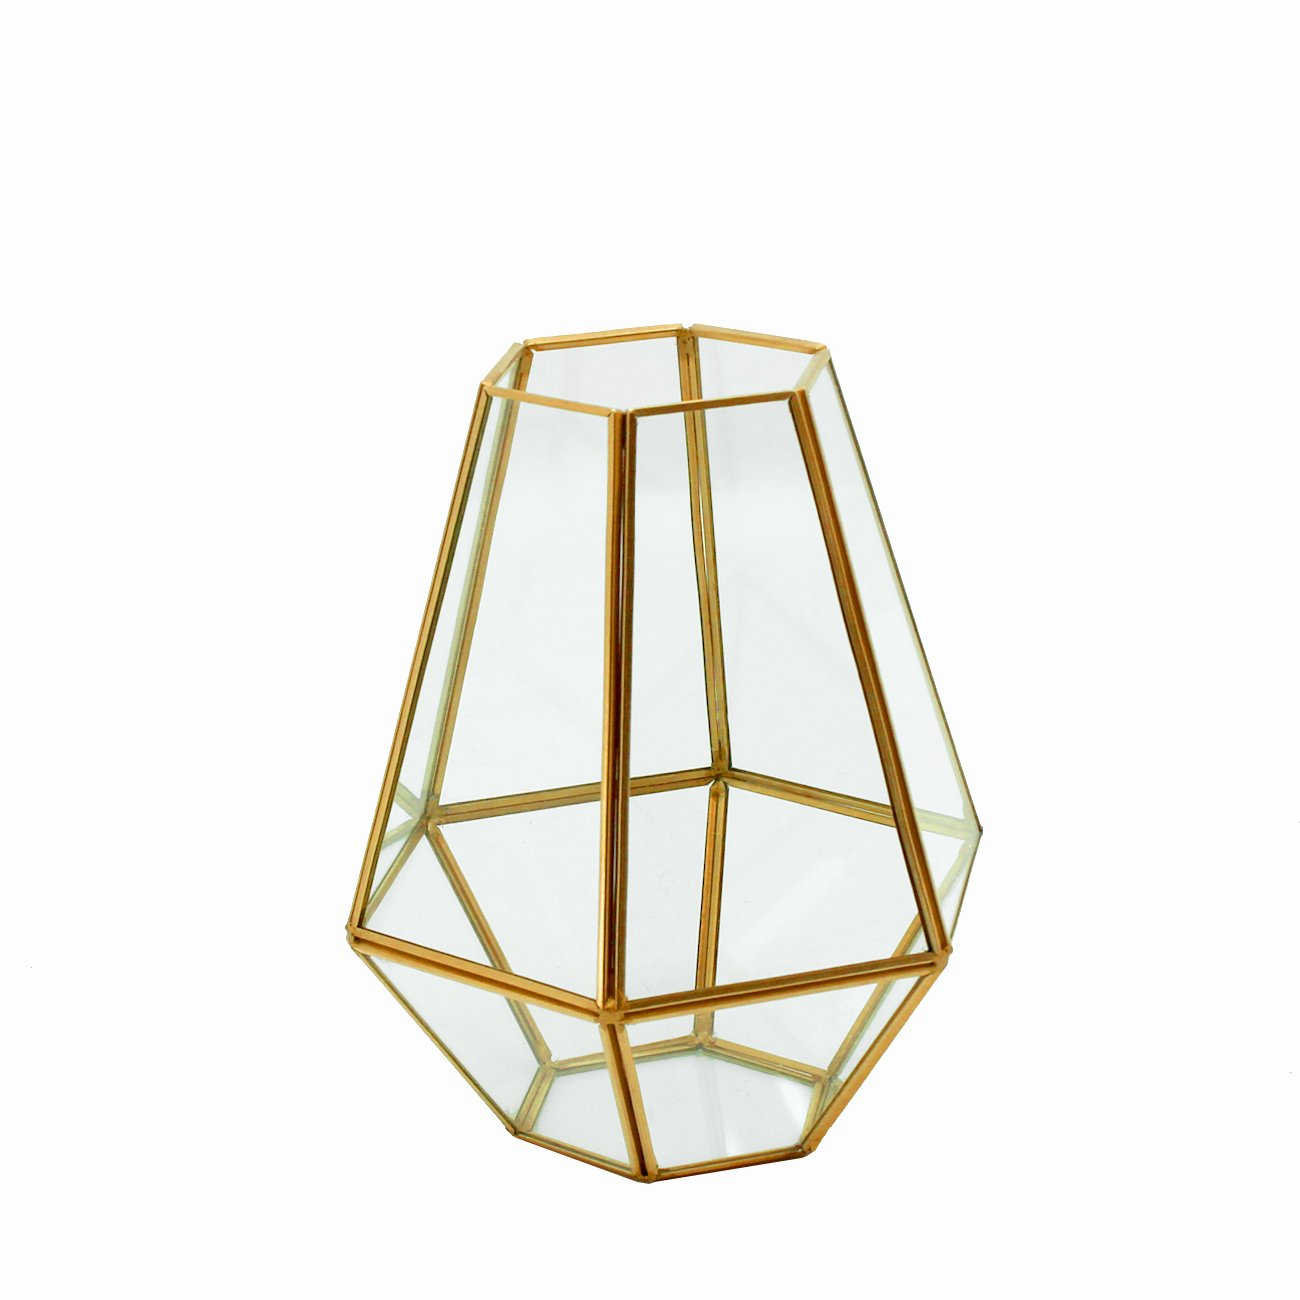 Torre & Tagus 902409A ORO Hexagon Glass Hurricane-Short